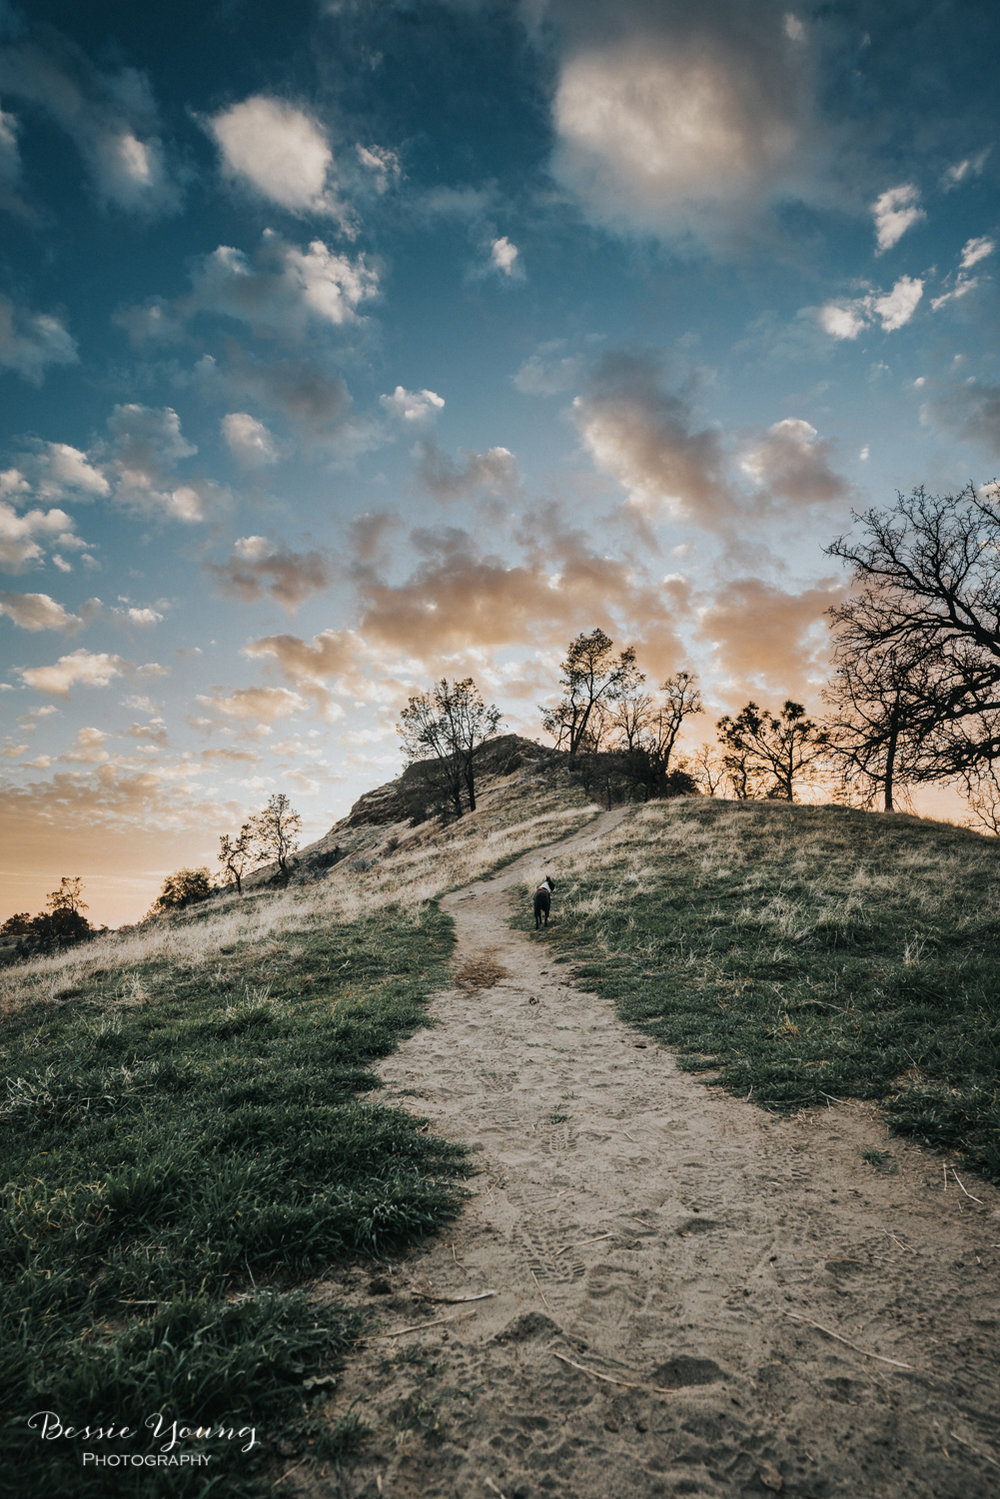 Pincushion Trail Fresno - Testing the Sony A7riii and Batis Lens - Landscape Photography - Bessie Young Photography